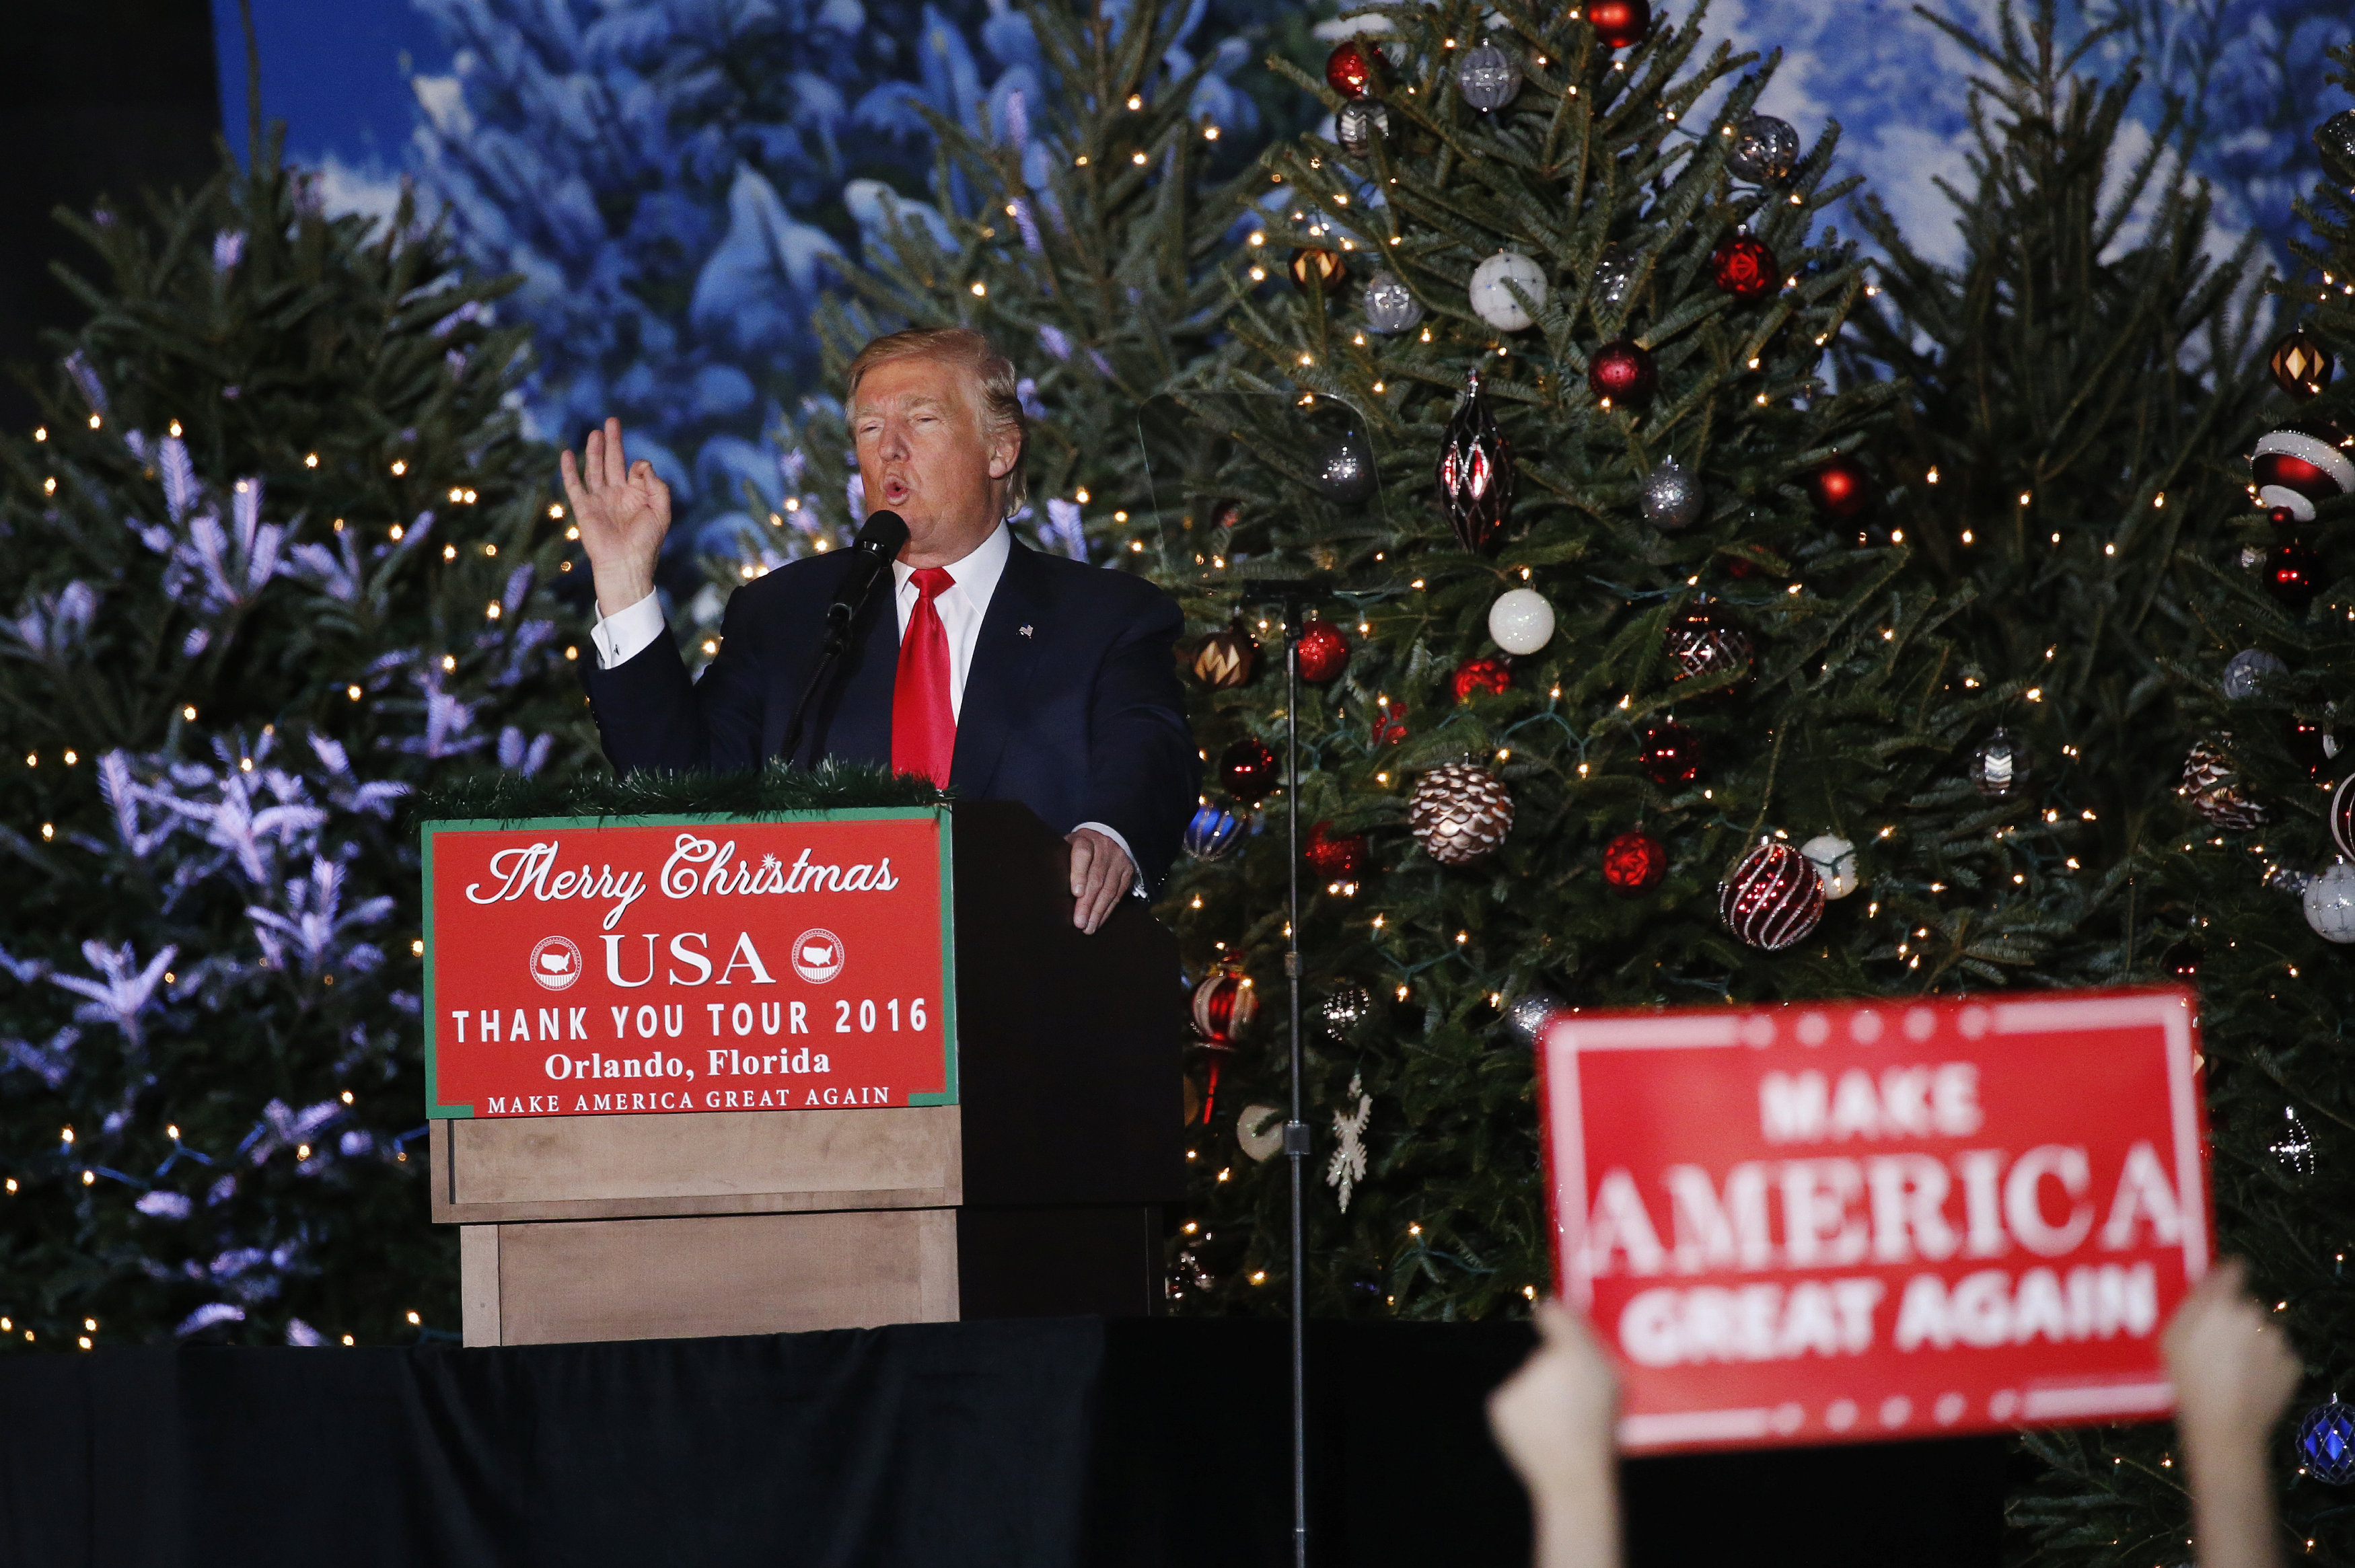 U.S. President-elect Donald Trump speaks during a USA Thank You Tour event in Orlando, Florida, U.S., December 16, 2016.